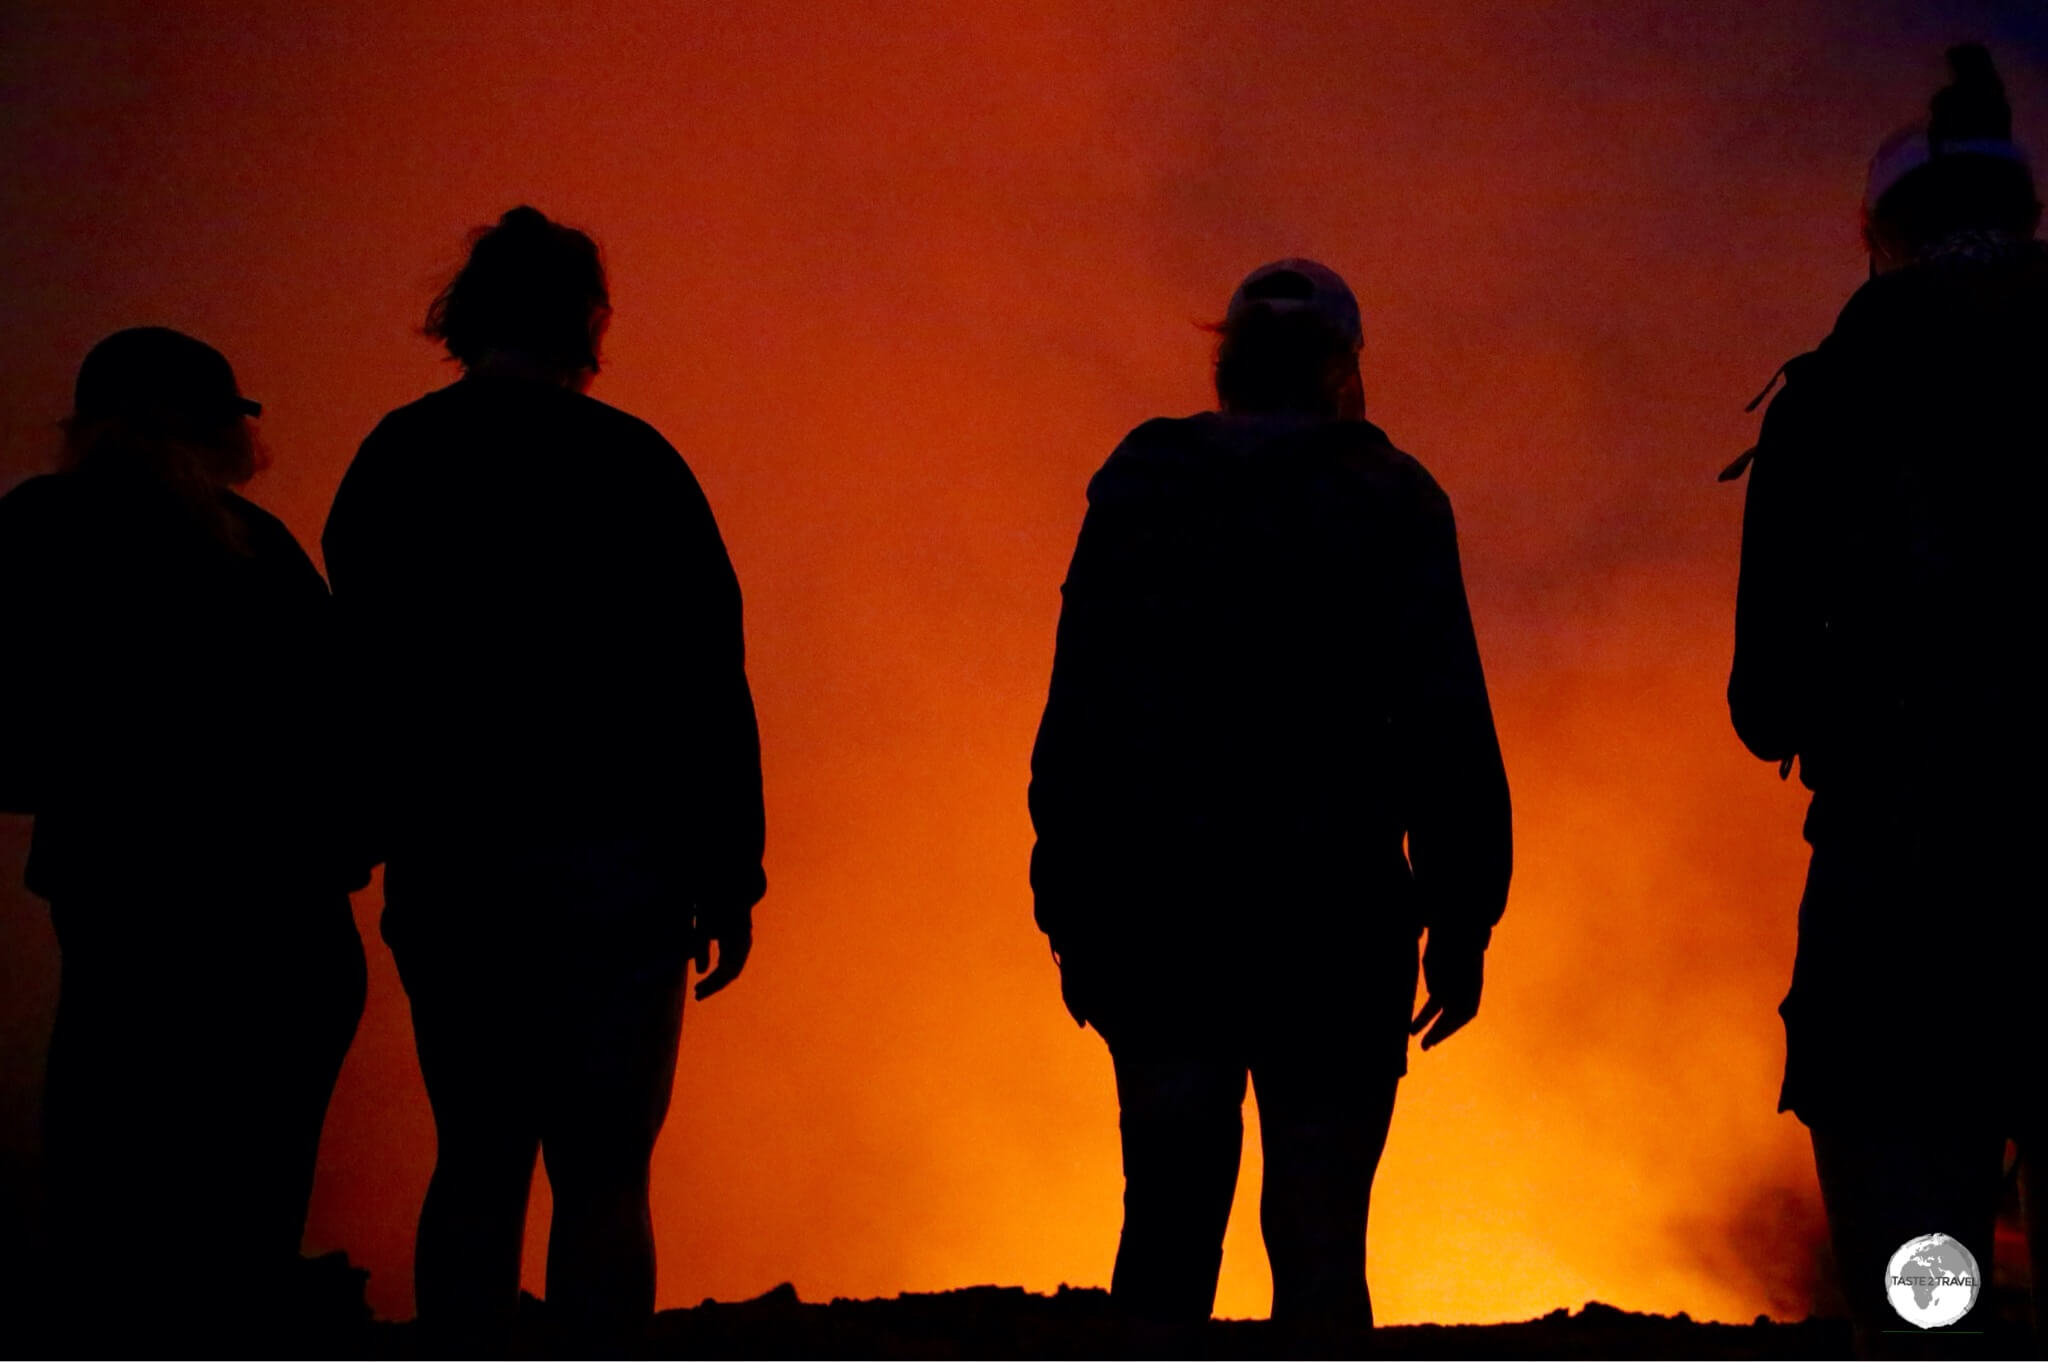 Observers illuminated by the glow from the volcano.